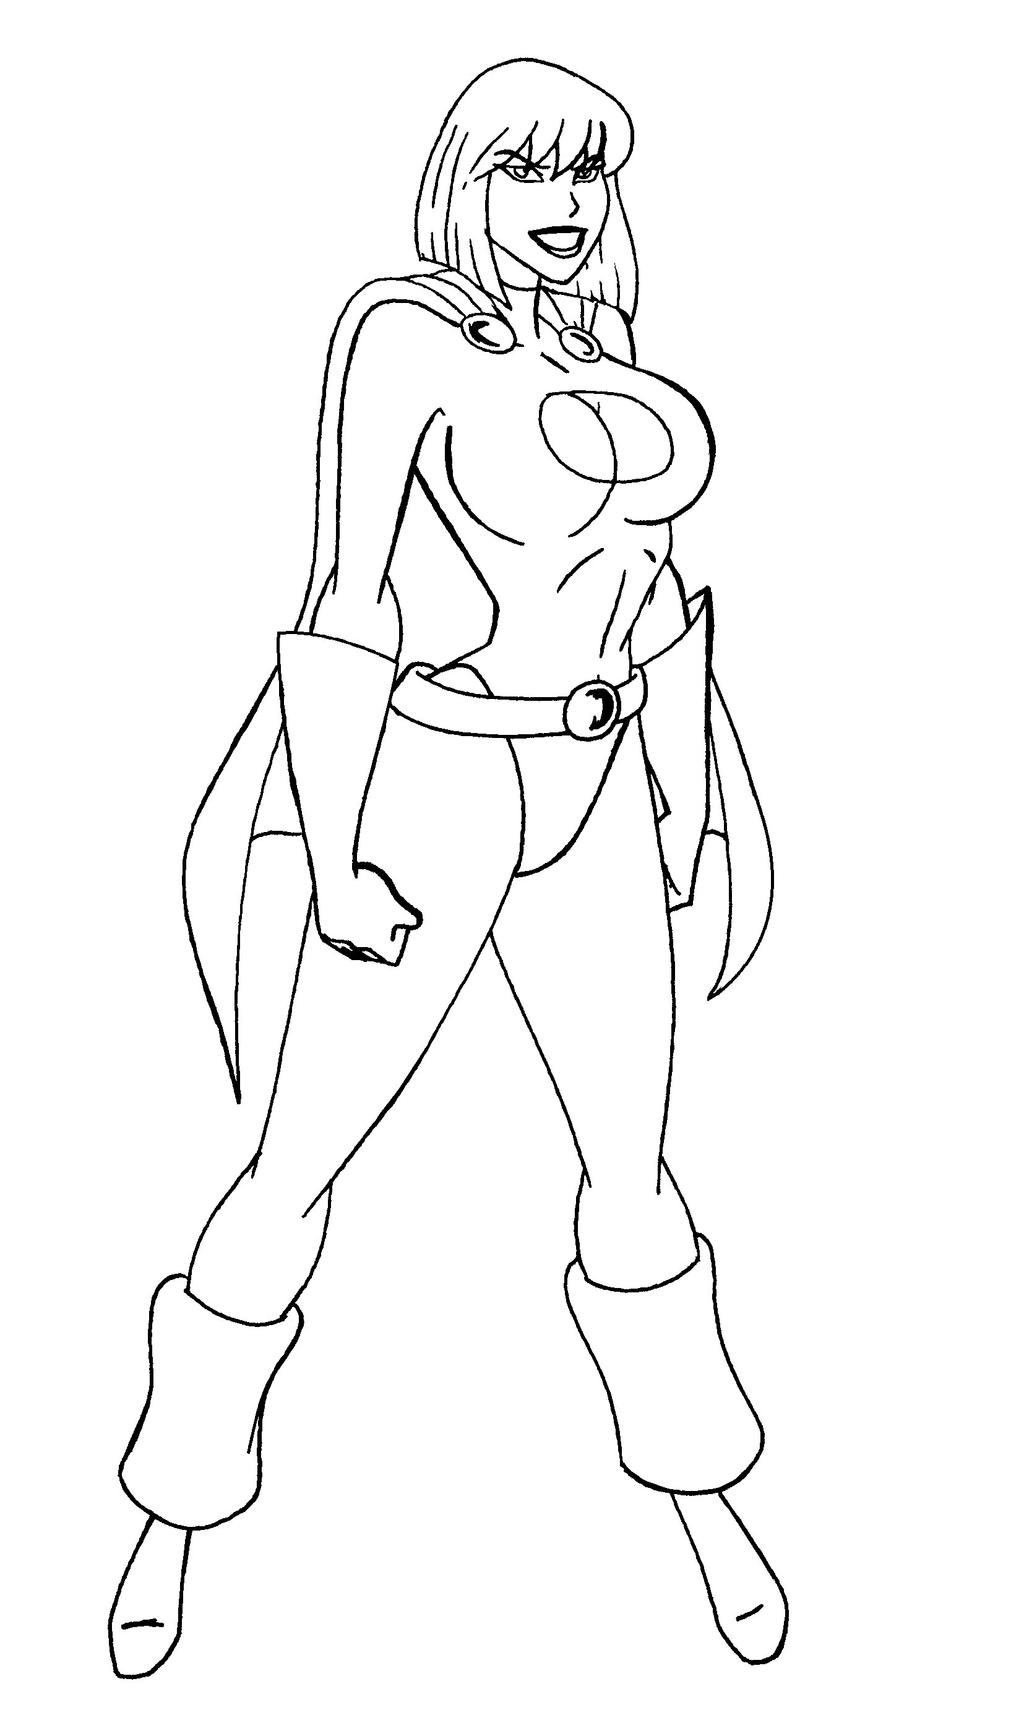 Power girl lineart jlu by josephb222 on deviantart for Girl power coloring pages